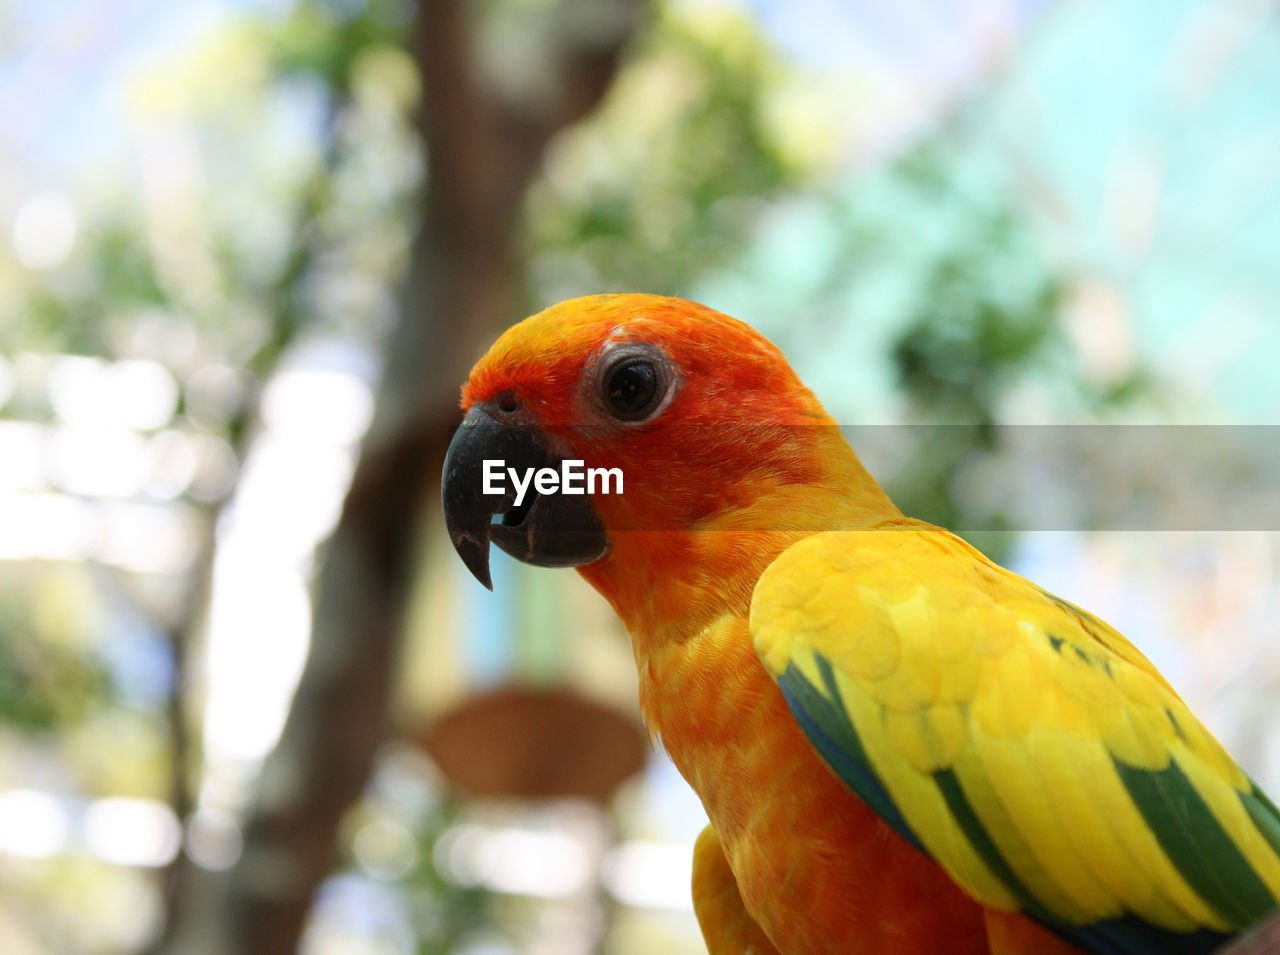 bird, animal themes, animal, parrot, vertebrate, animal wildlife, focus on foreground, animals in the wild, one animal, close-up, day, perching, no people, nature, outdoors, macaw, beak, beauty in nature, multi colored, yellow